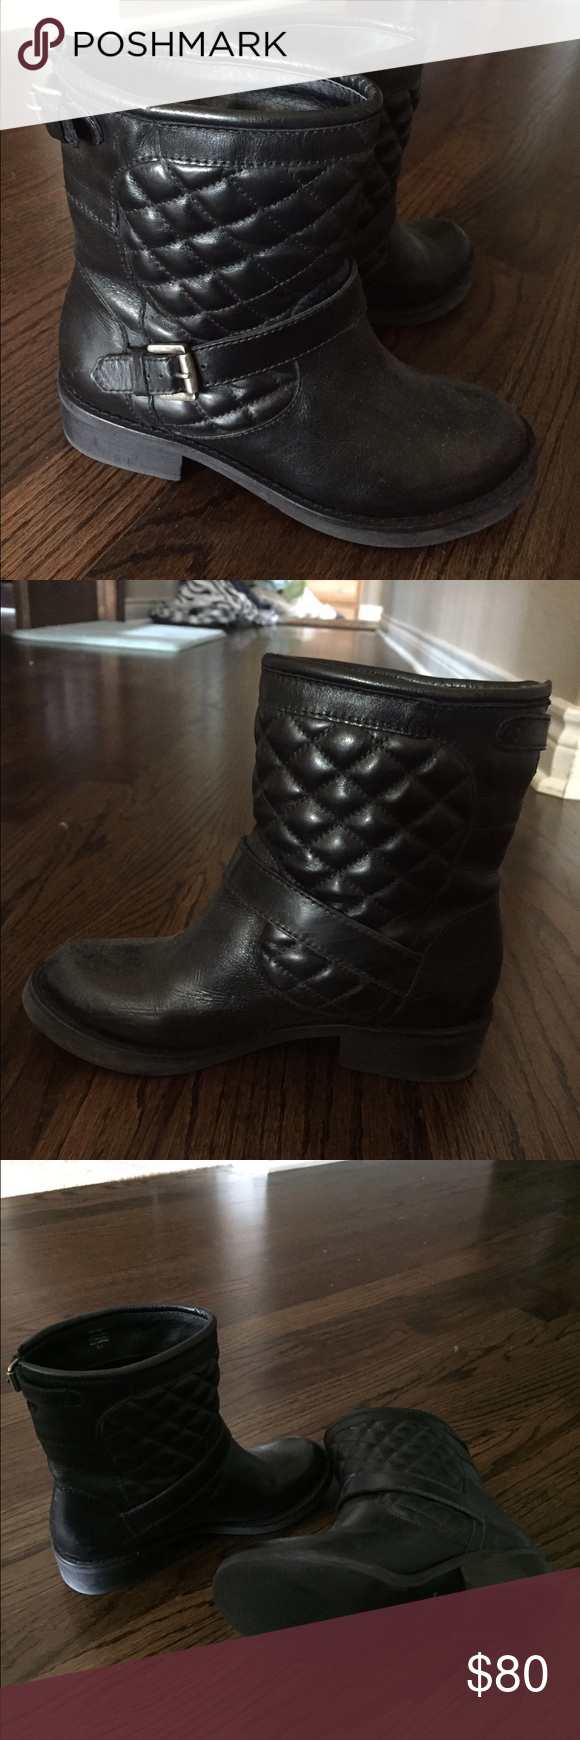 Black Booties Black quilted booties. Size six women's. Gently used no damages Shoes Ankle Boots & Booties